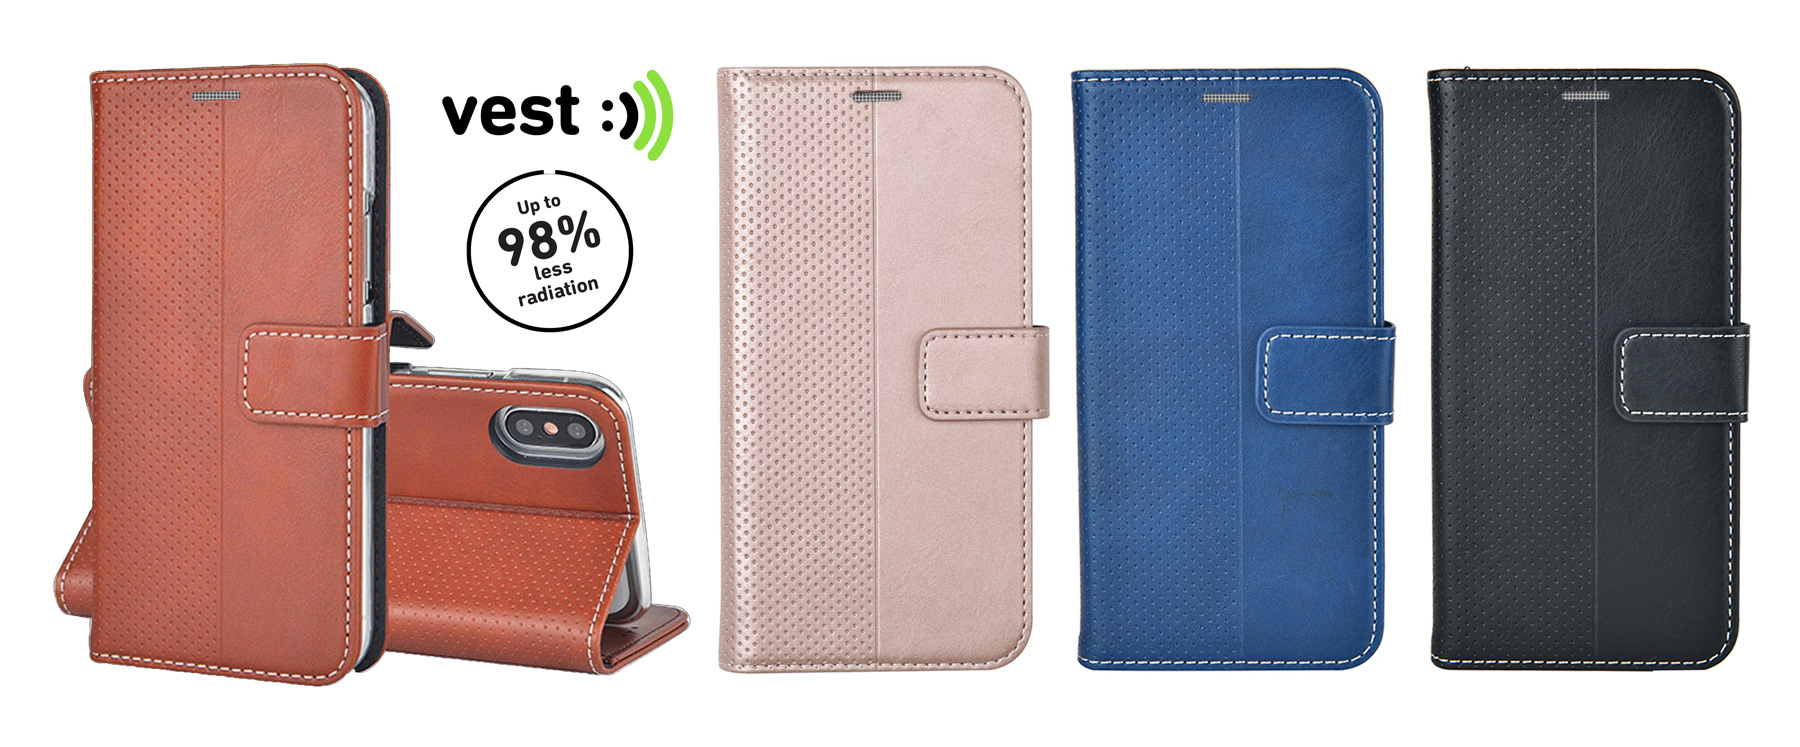 VestTech Anti Radiation Wallet Covers Colours